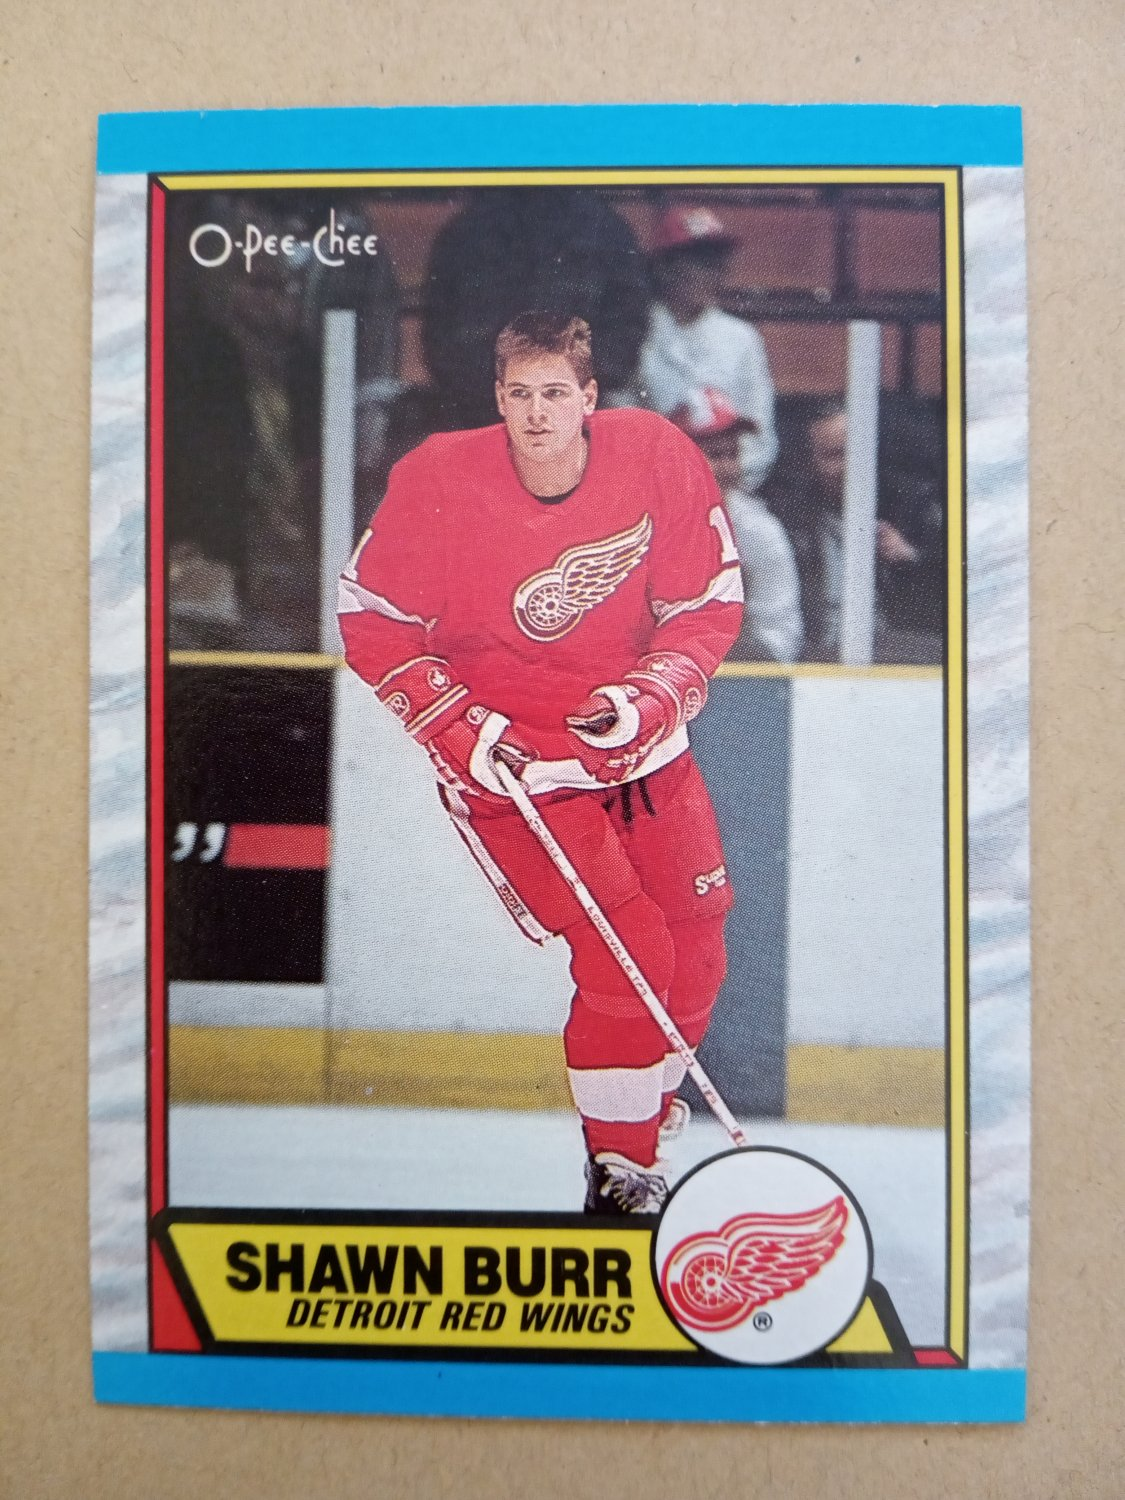 1989-90 O-Pee-Chee #101 Shawn Burr Detroit Red Wings